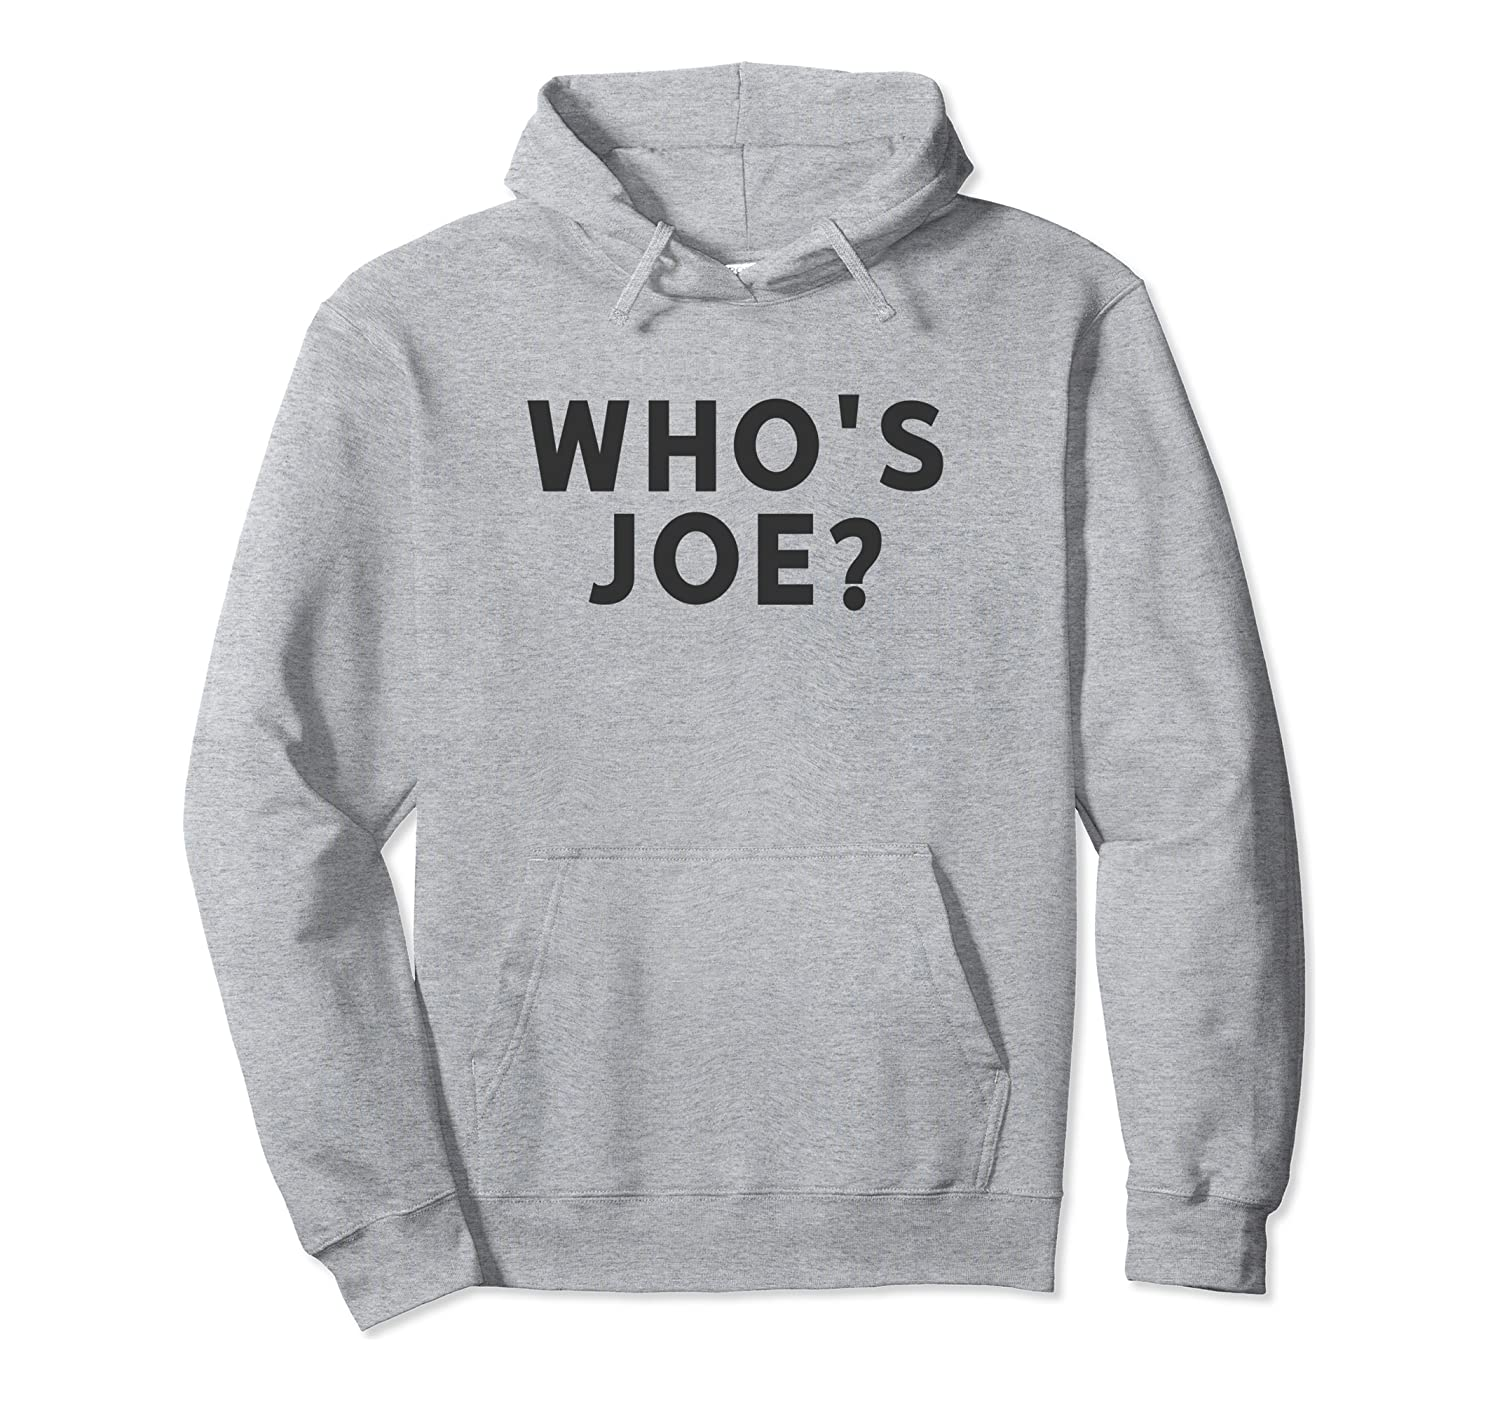 Amazon Com Who S Joe Knock Knock Joke Joe Mama Dank Meme Pun Prank Pullover Hoodie Clothing The best site to see, rate and share funny memes! amazon com who s joe knock knock joke